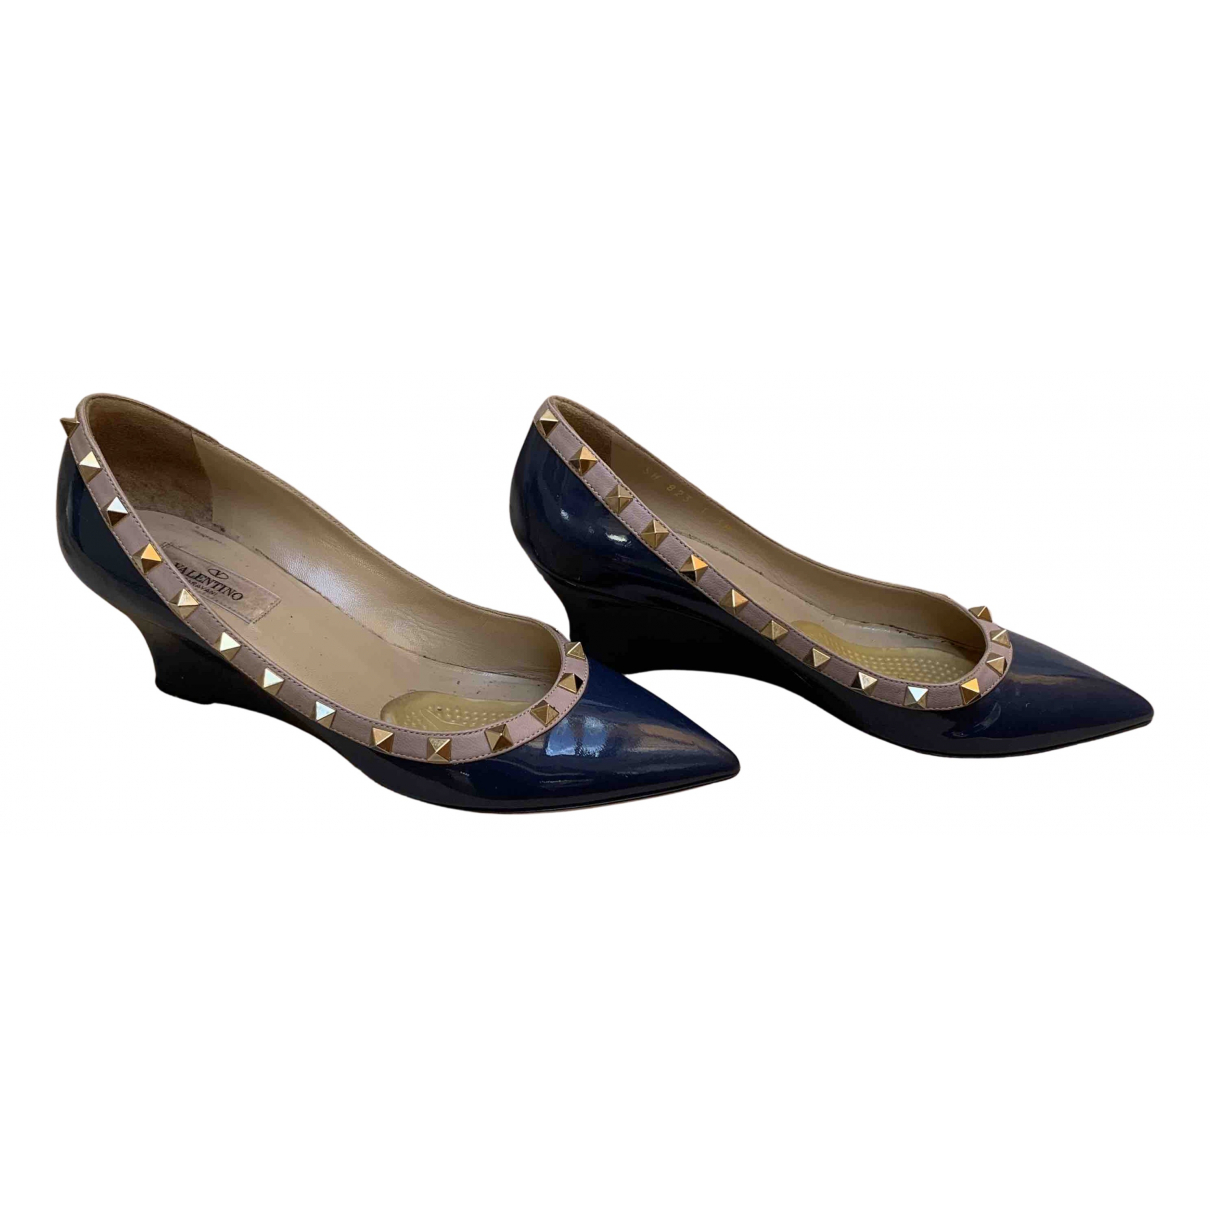 Valentino Garavani Rockstud Navy Patent leather Heels for Women 38 EU